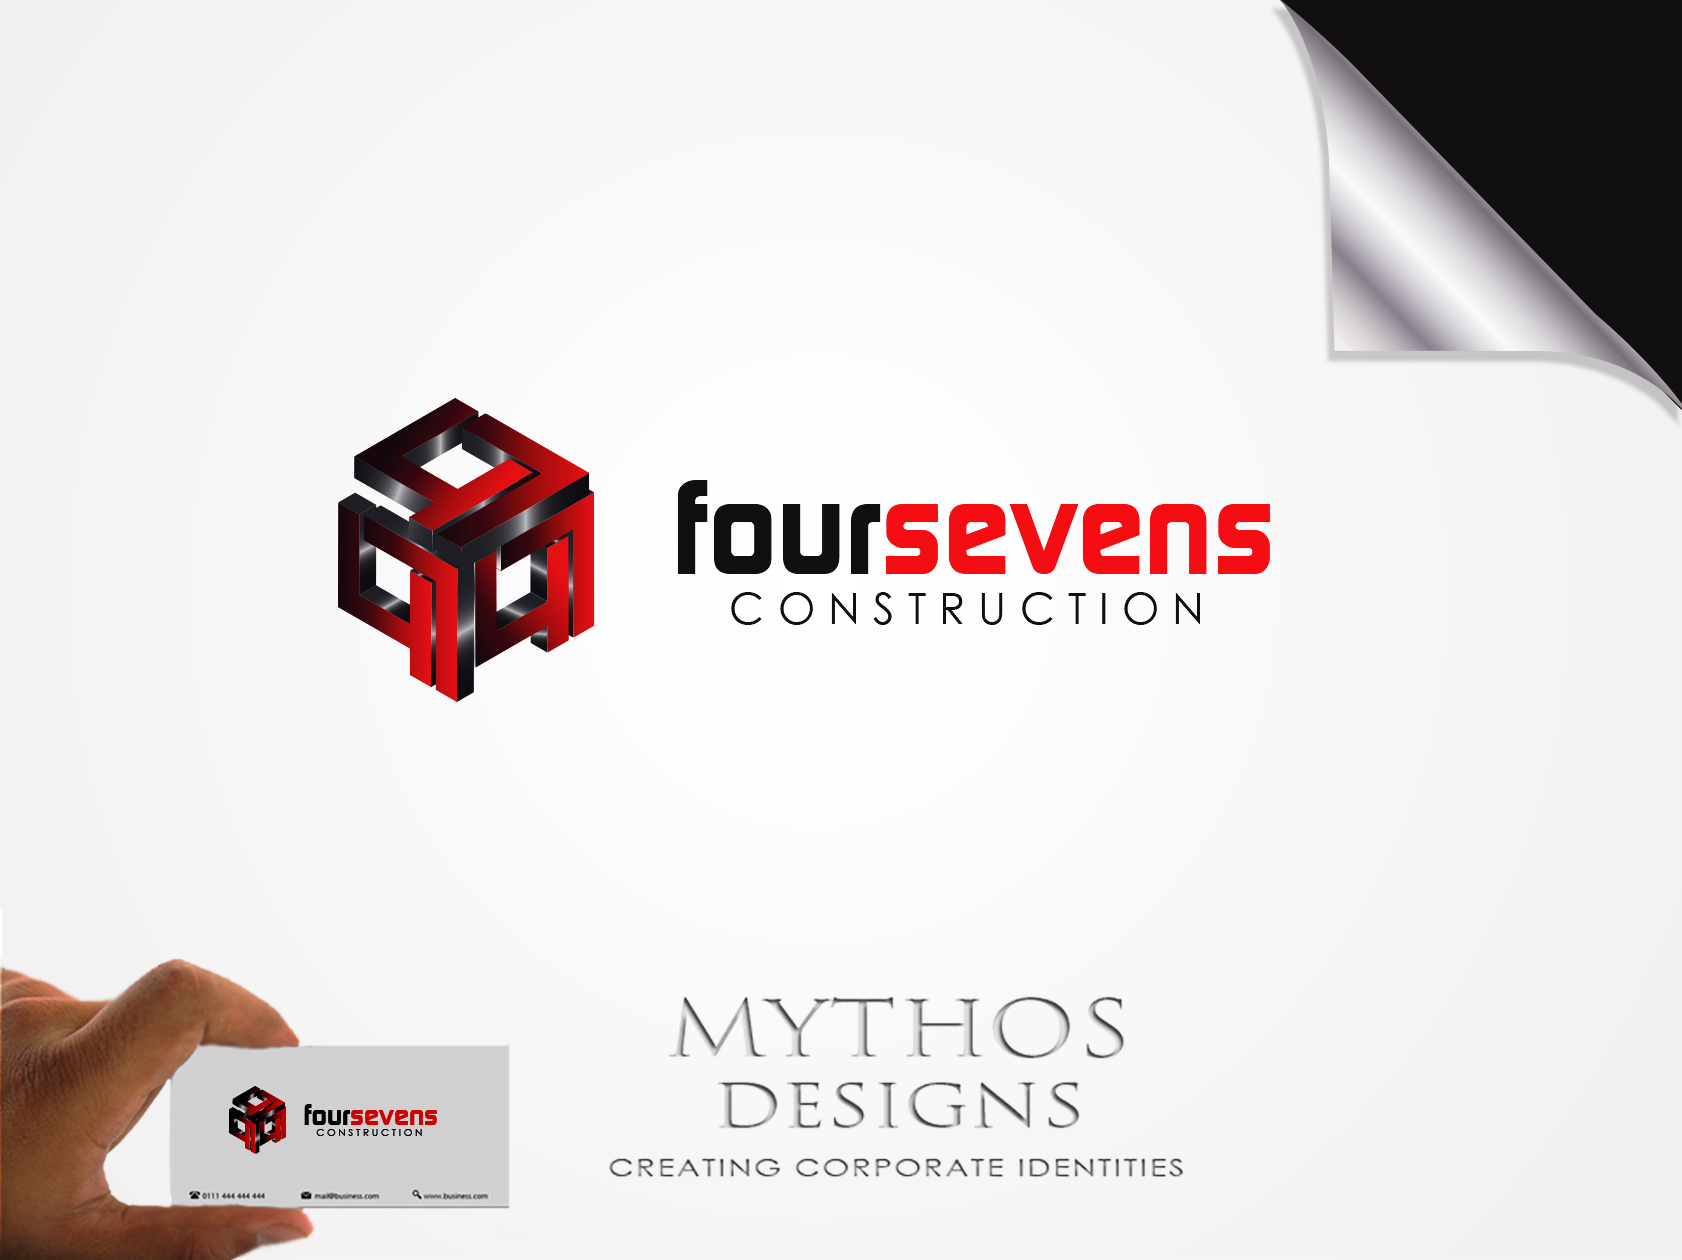 Logo Design by Mythos Designs - Entry No. 46 in the Logo Design Contest New Logo Design for foursevens.